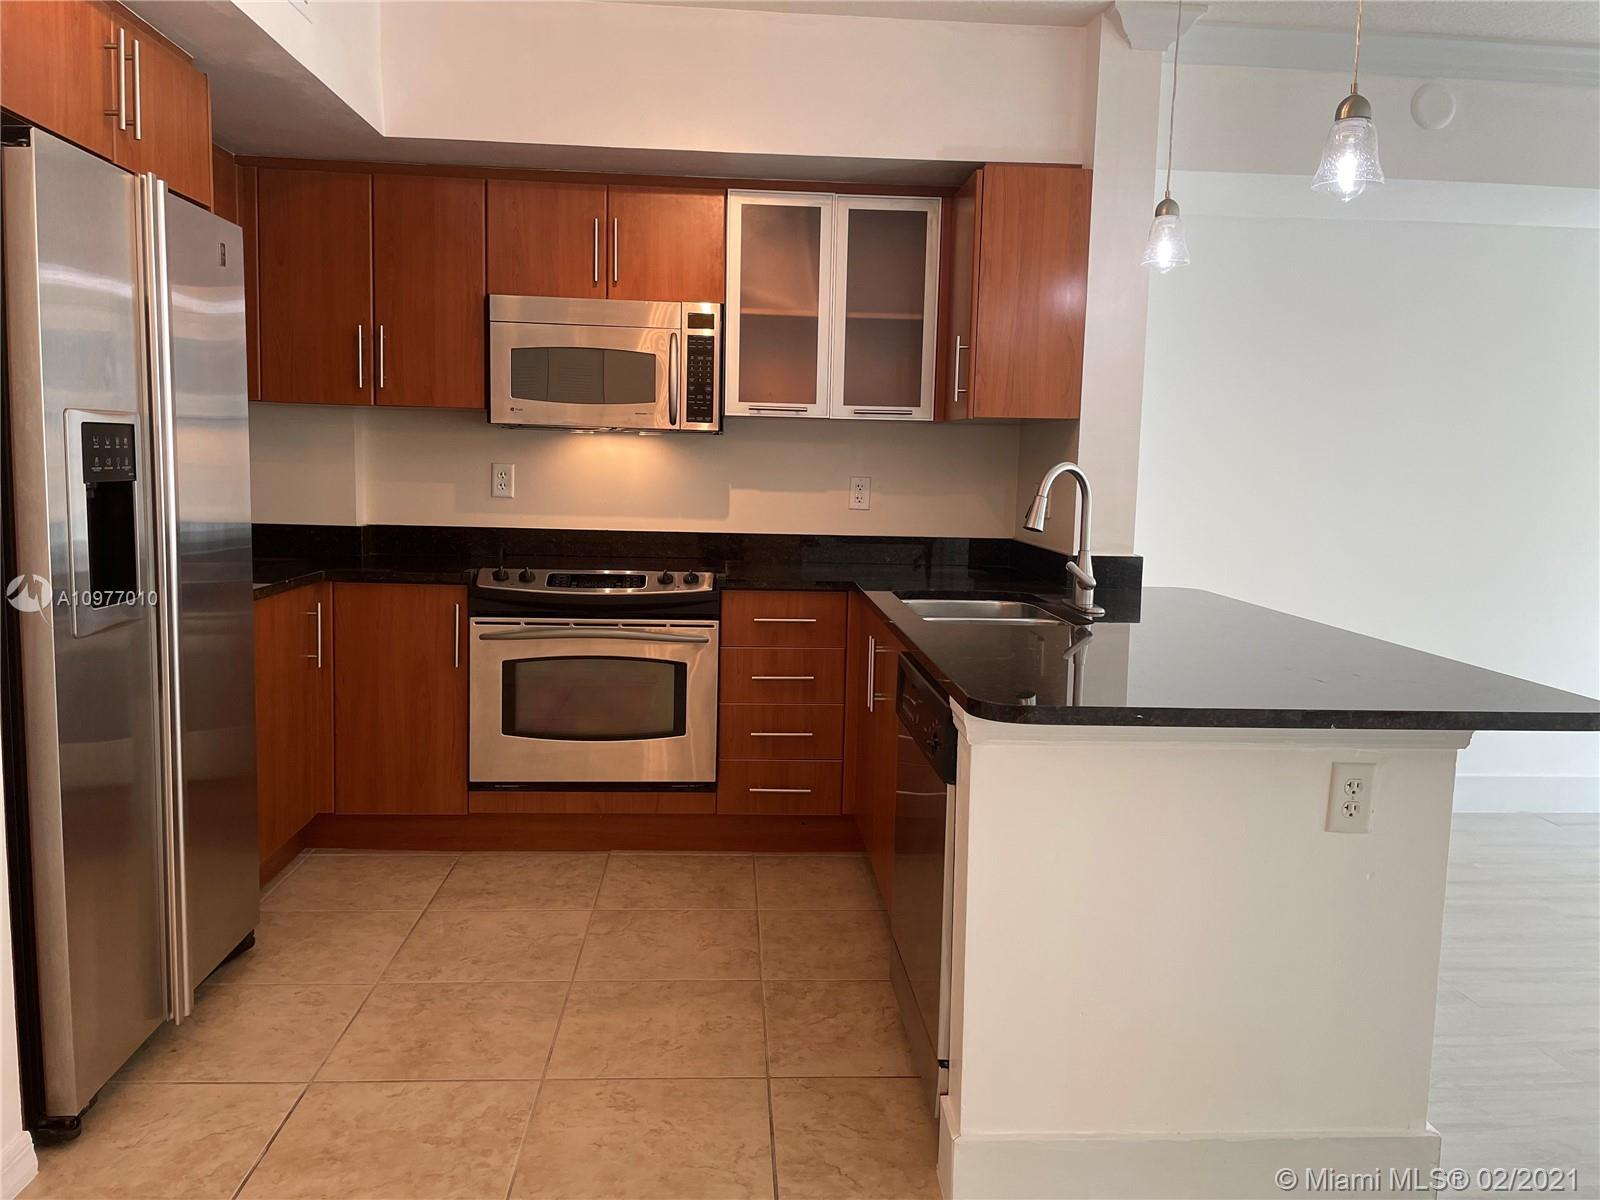 Fantastic Investor Opportunity, tenant in place until February 4th, 2022 for $ 1,600/ month. Beautif